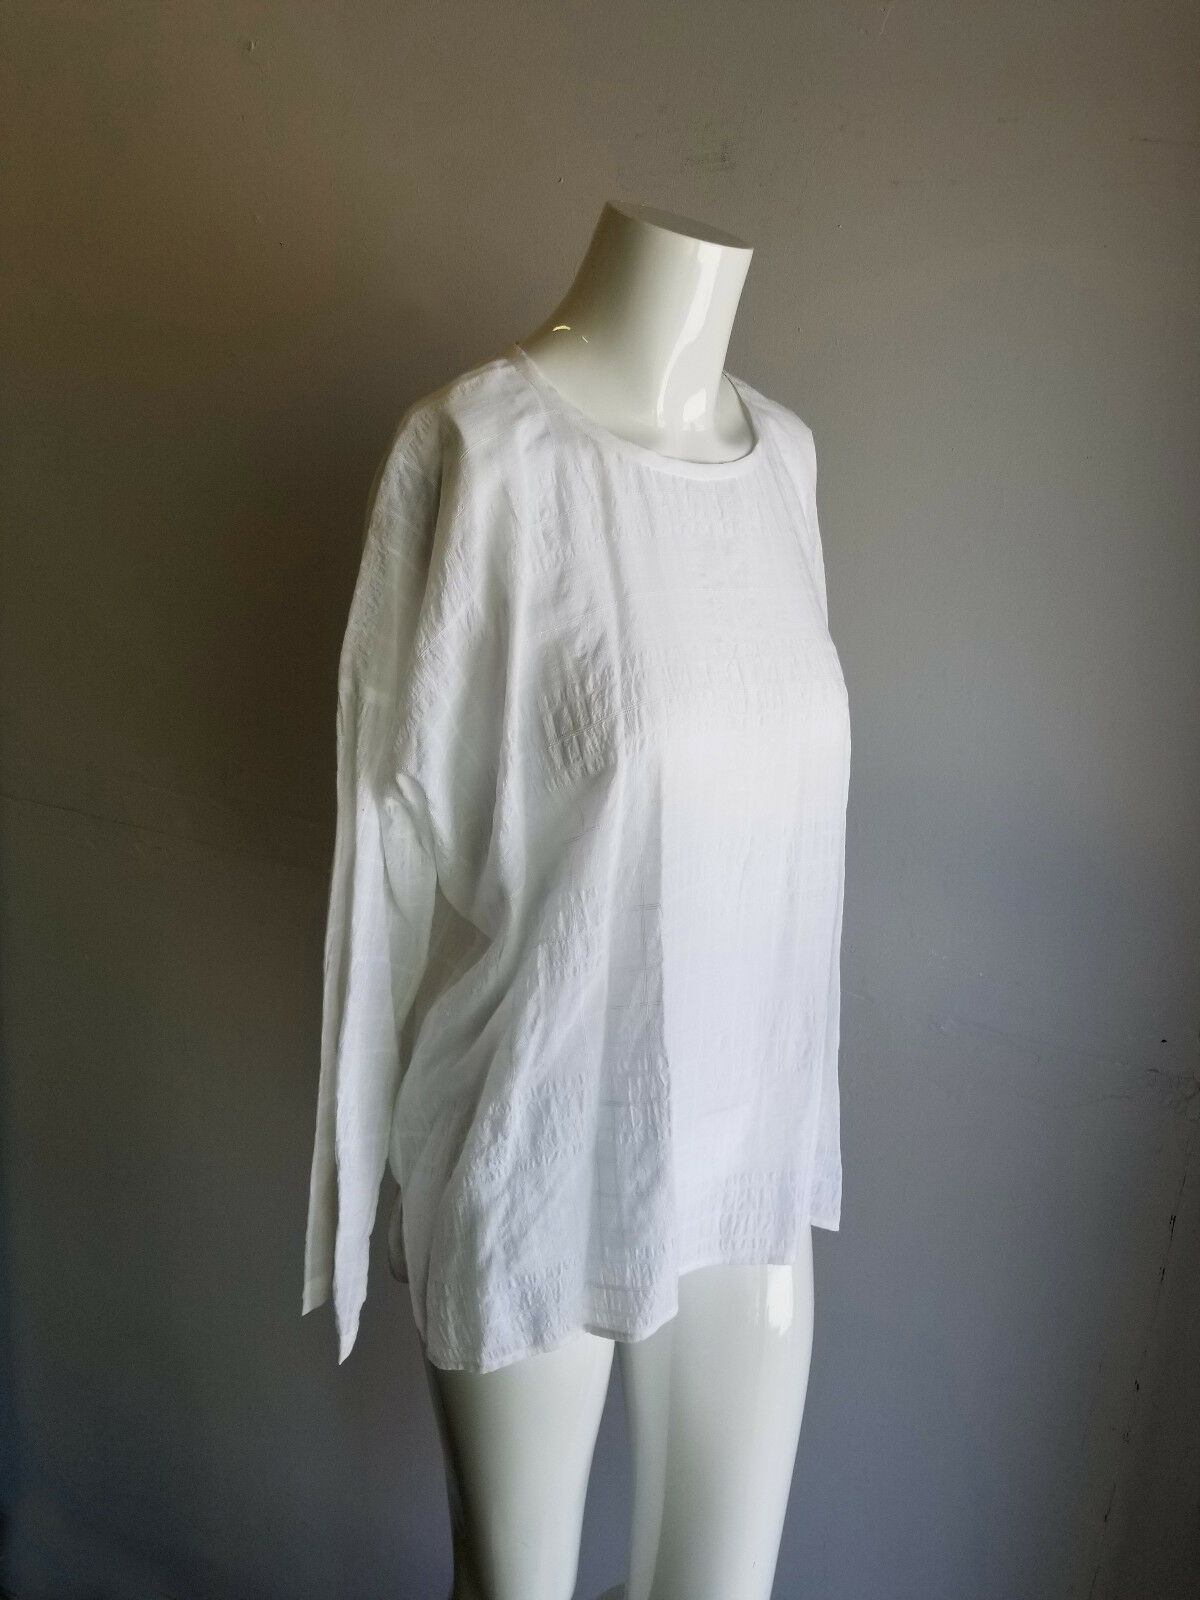 NWT VINCE. Weiß Texturot Light Weight Woven Long Sleeve Blouse Shirt Top